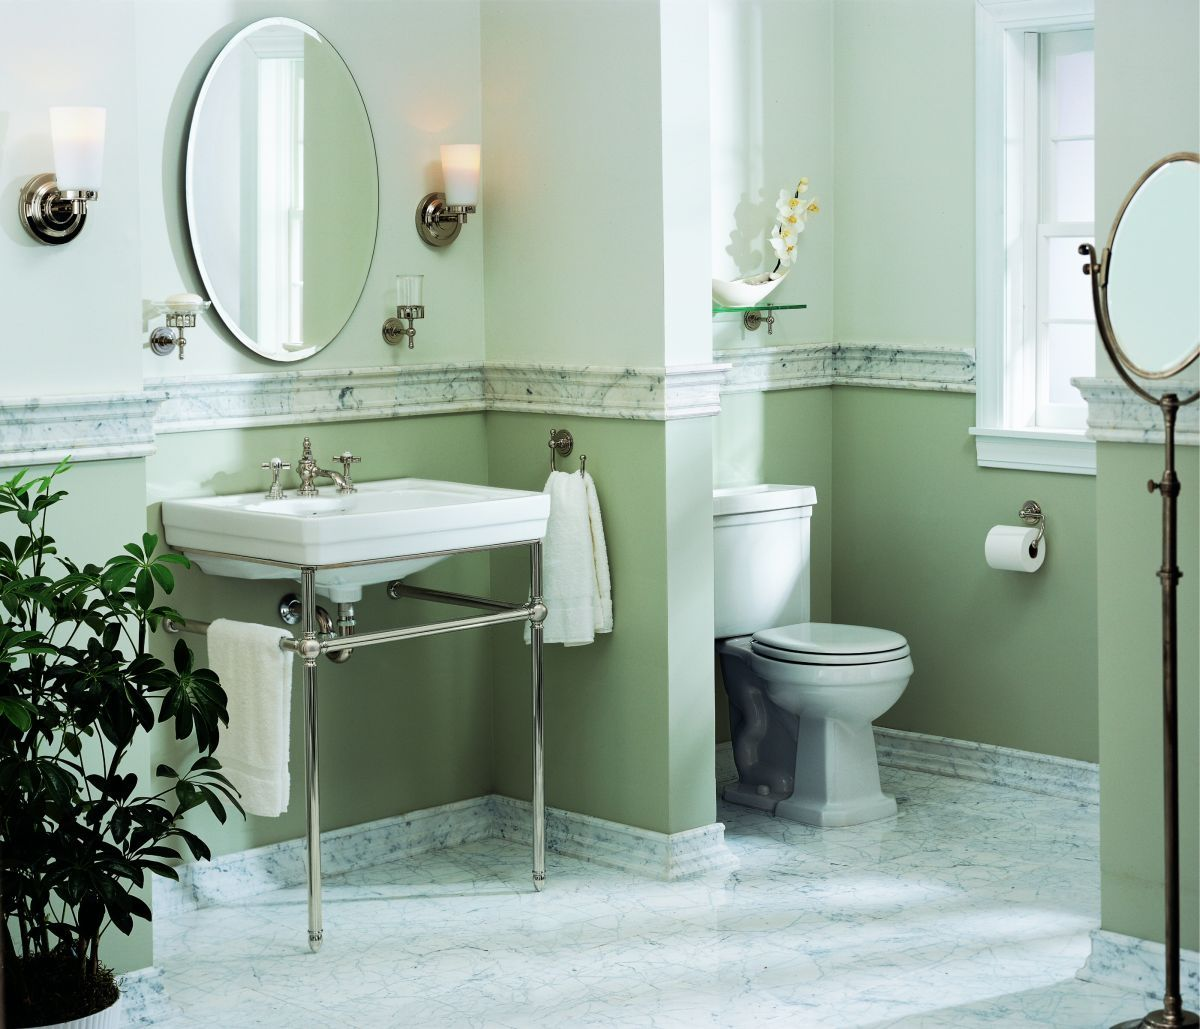 Glass shelf with rail for bathroom - I Love The Two Tone Paint Separated By The Marble Chair Rail Trim Glass Bathroom